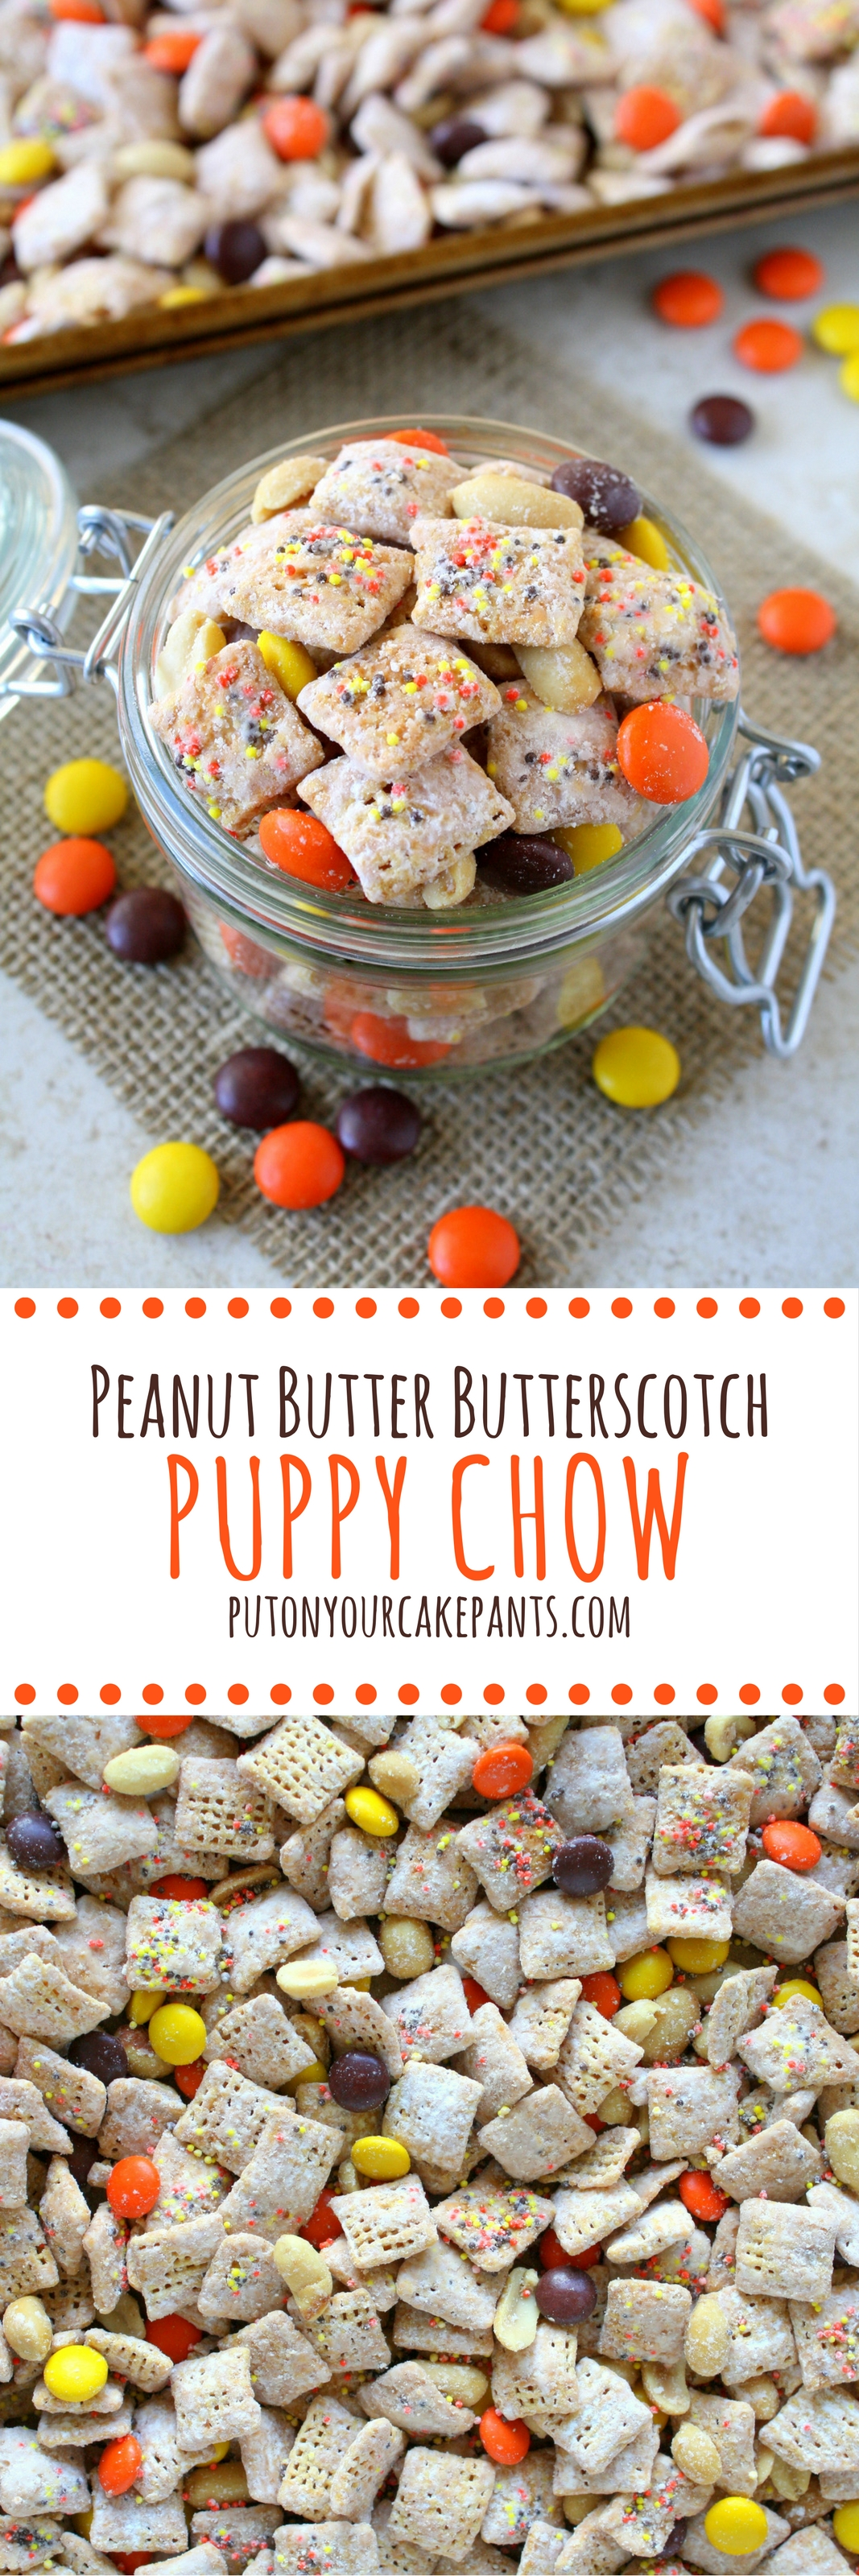 peanut butter butterscotch puppy chow